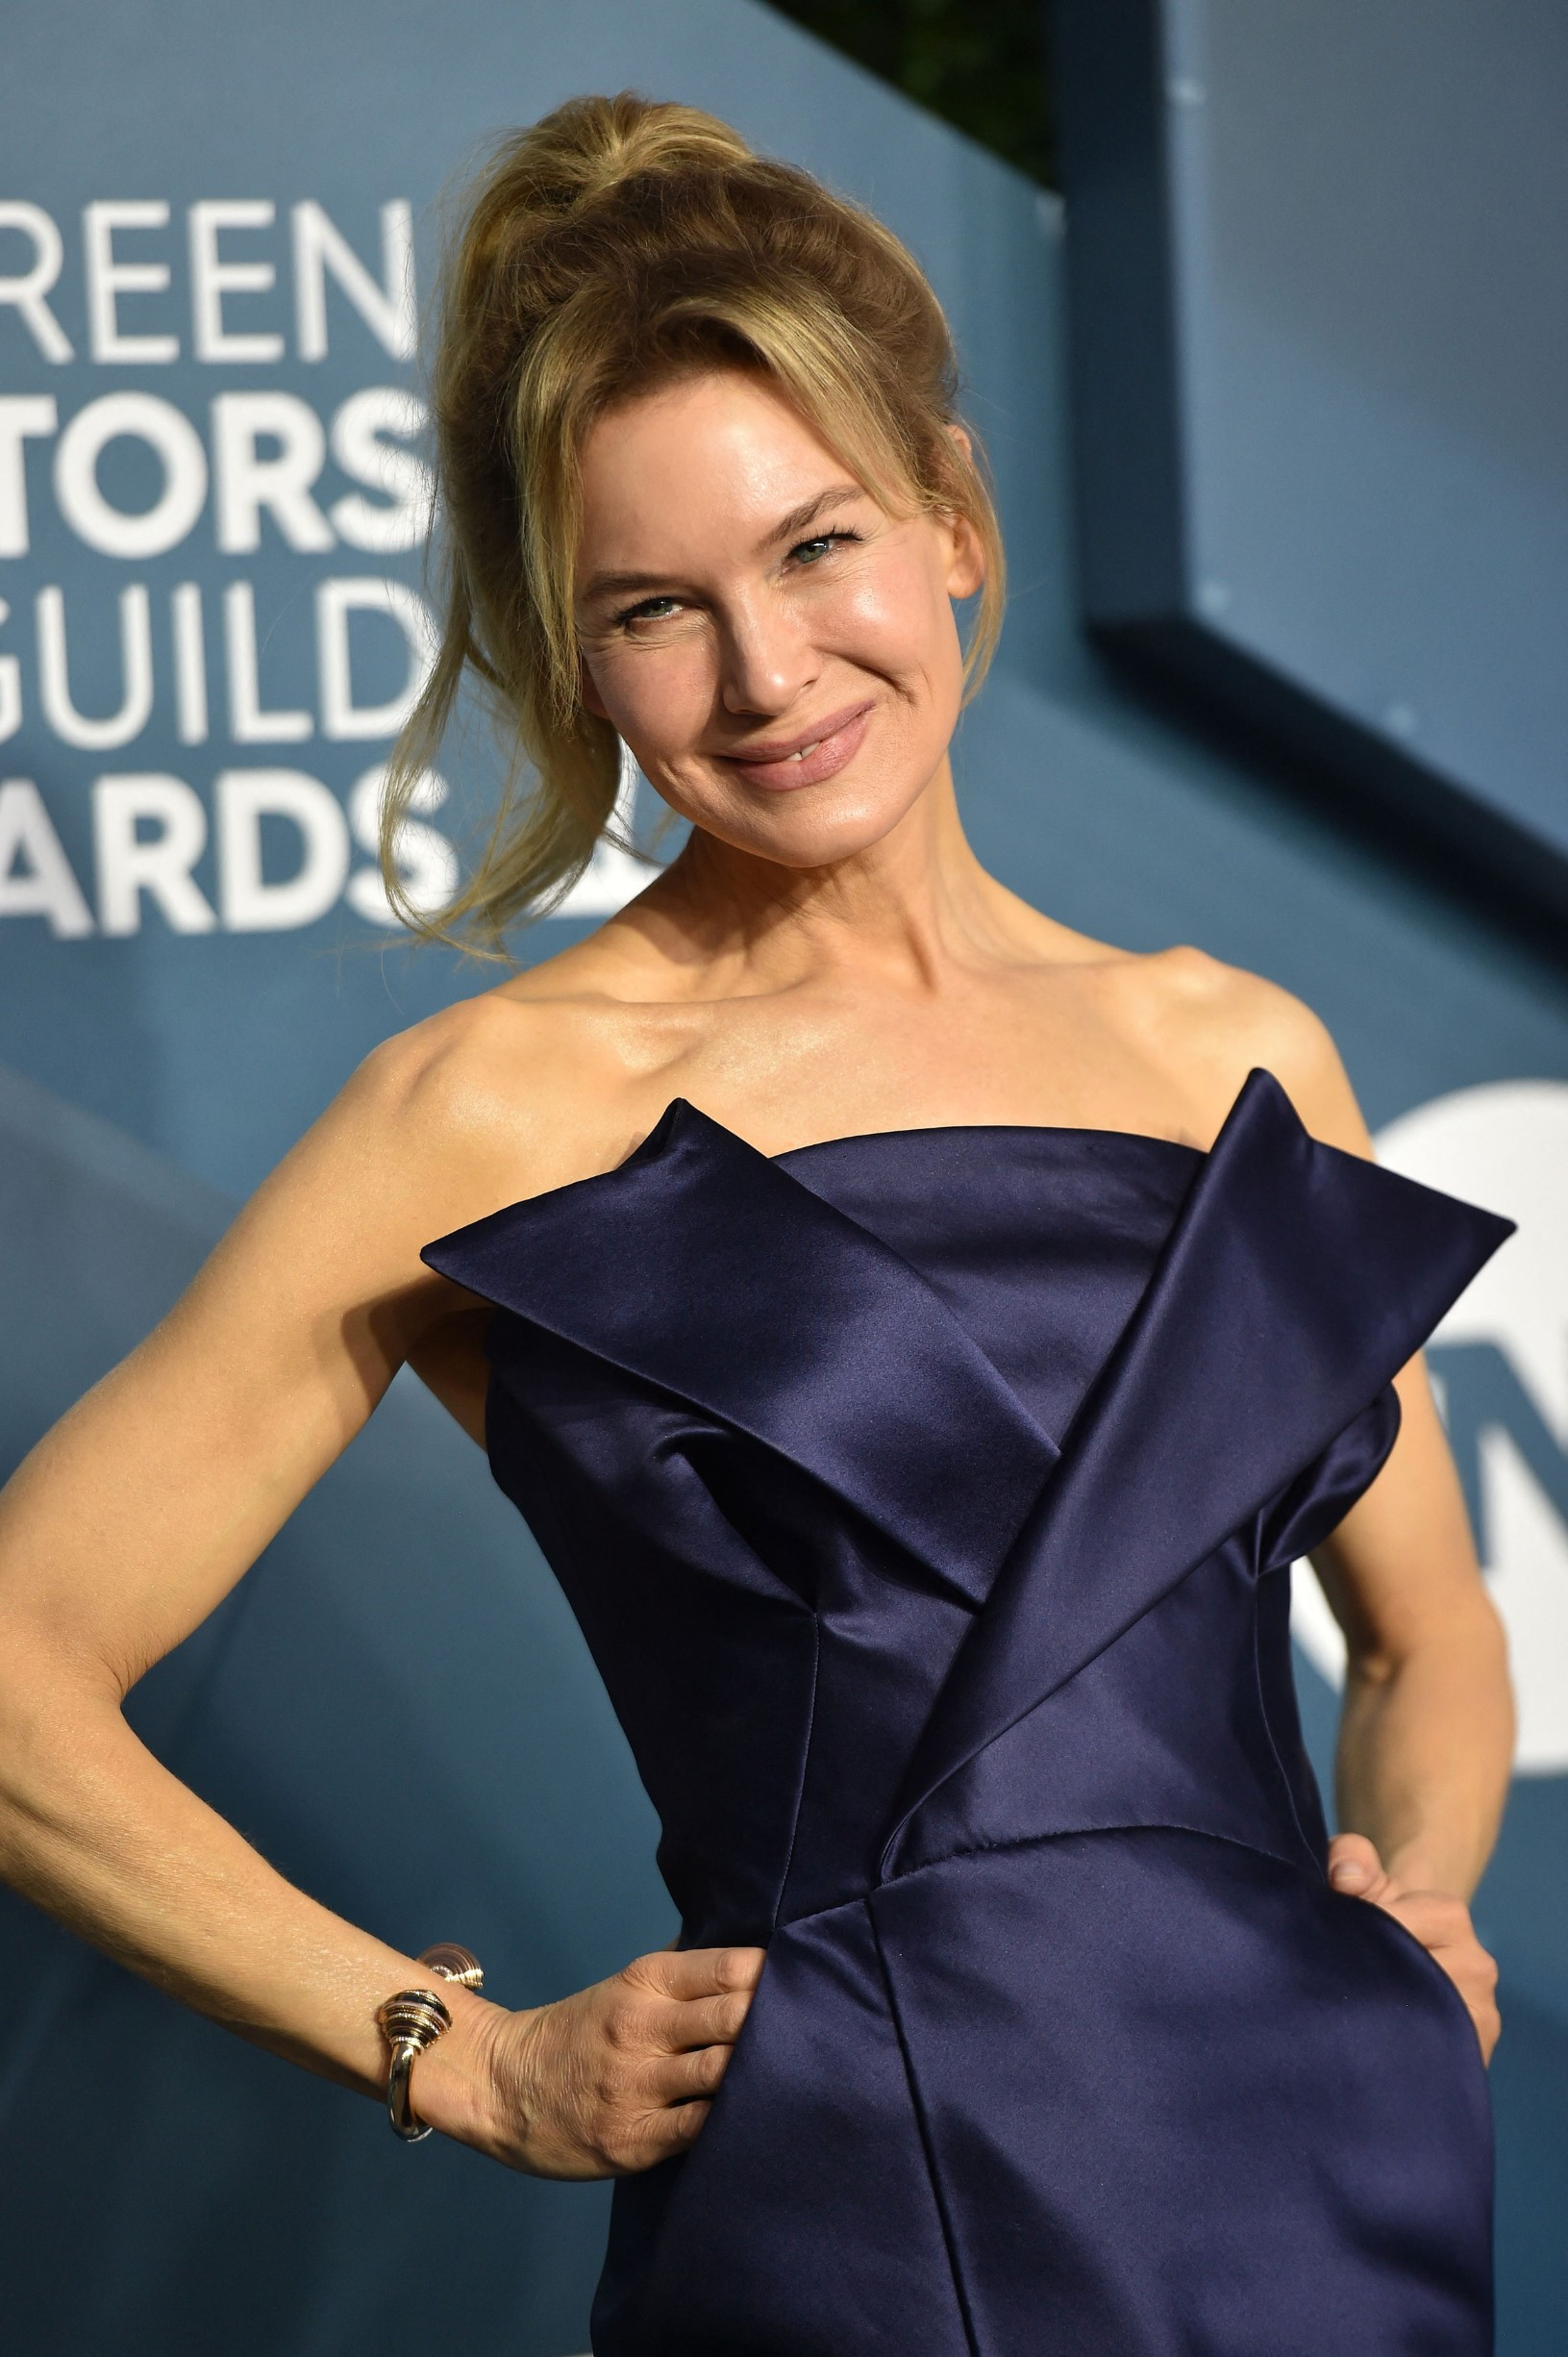 Renee Zellweger attends the 26th Annual Screen Actors Guild Awards at The Shrine Auditorium on January 19, 2020 in Los Angeles, CA, USA., Image: 493725770, License: Rights-managed, Restrictions: , Model Release: no, Credit line: Hahn Lionel/ABACA / Abaca Press / Profimedia